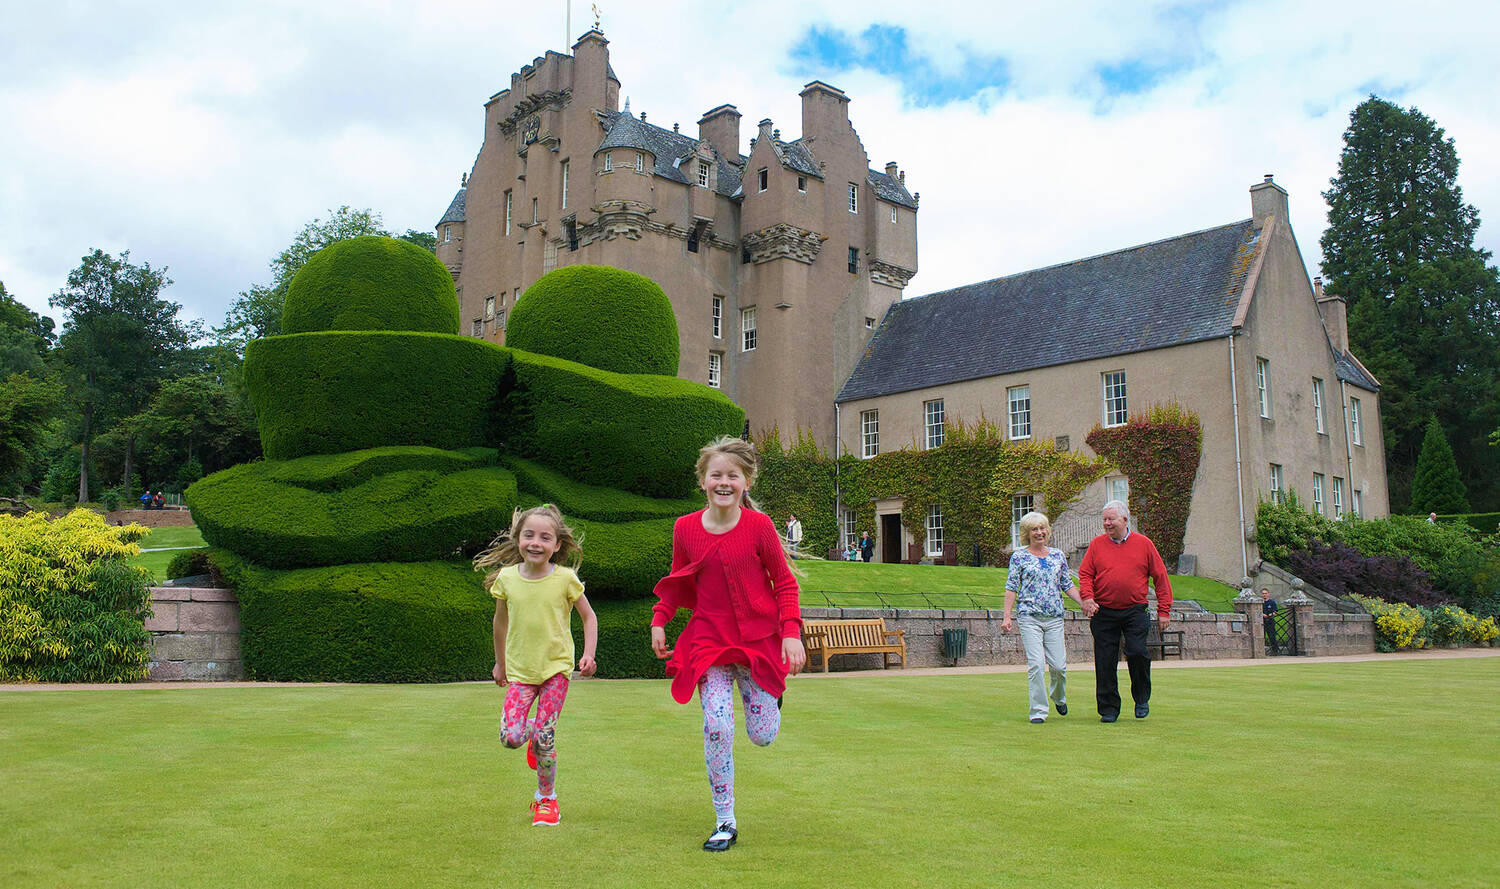 Tow children run towards the camera on the lawn in front of Crathes Castle. An older couple walk hand in hand behind them.